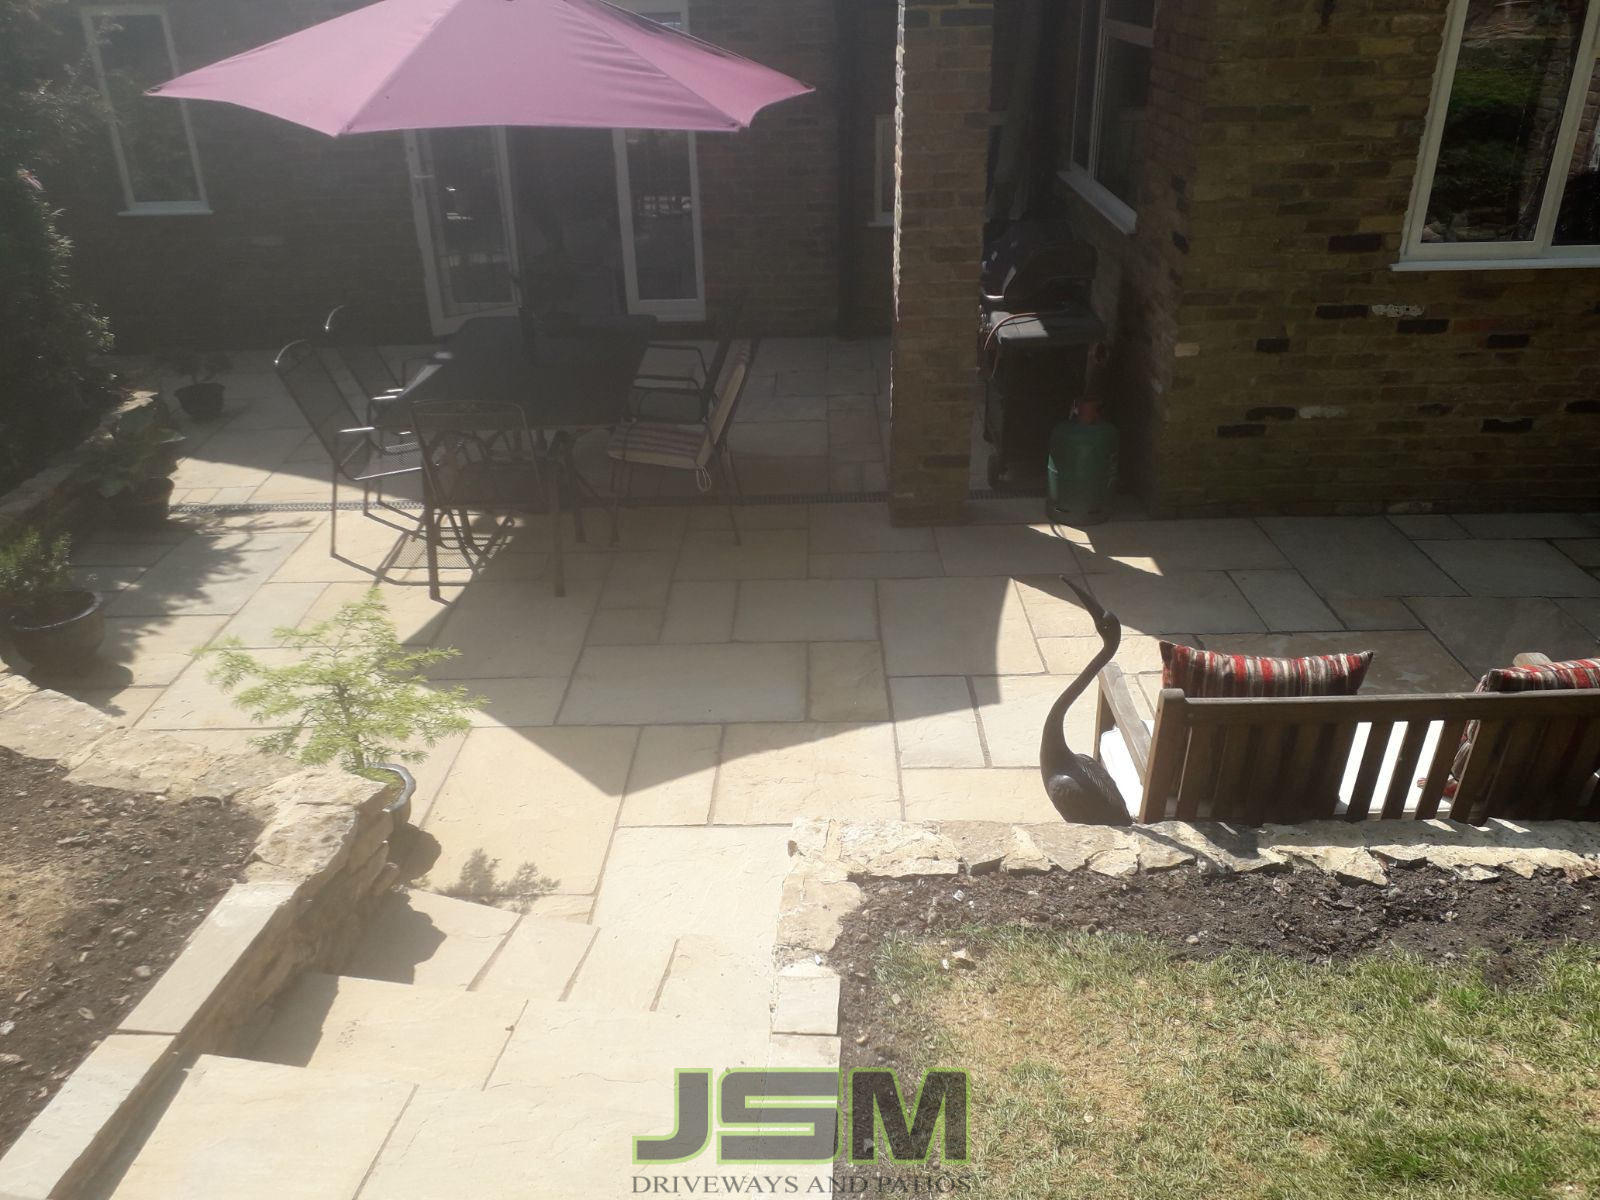 Garden Paving Contractors in Great Brickhill, Milton Keynes